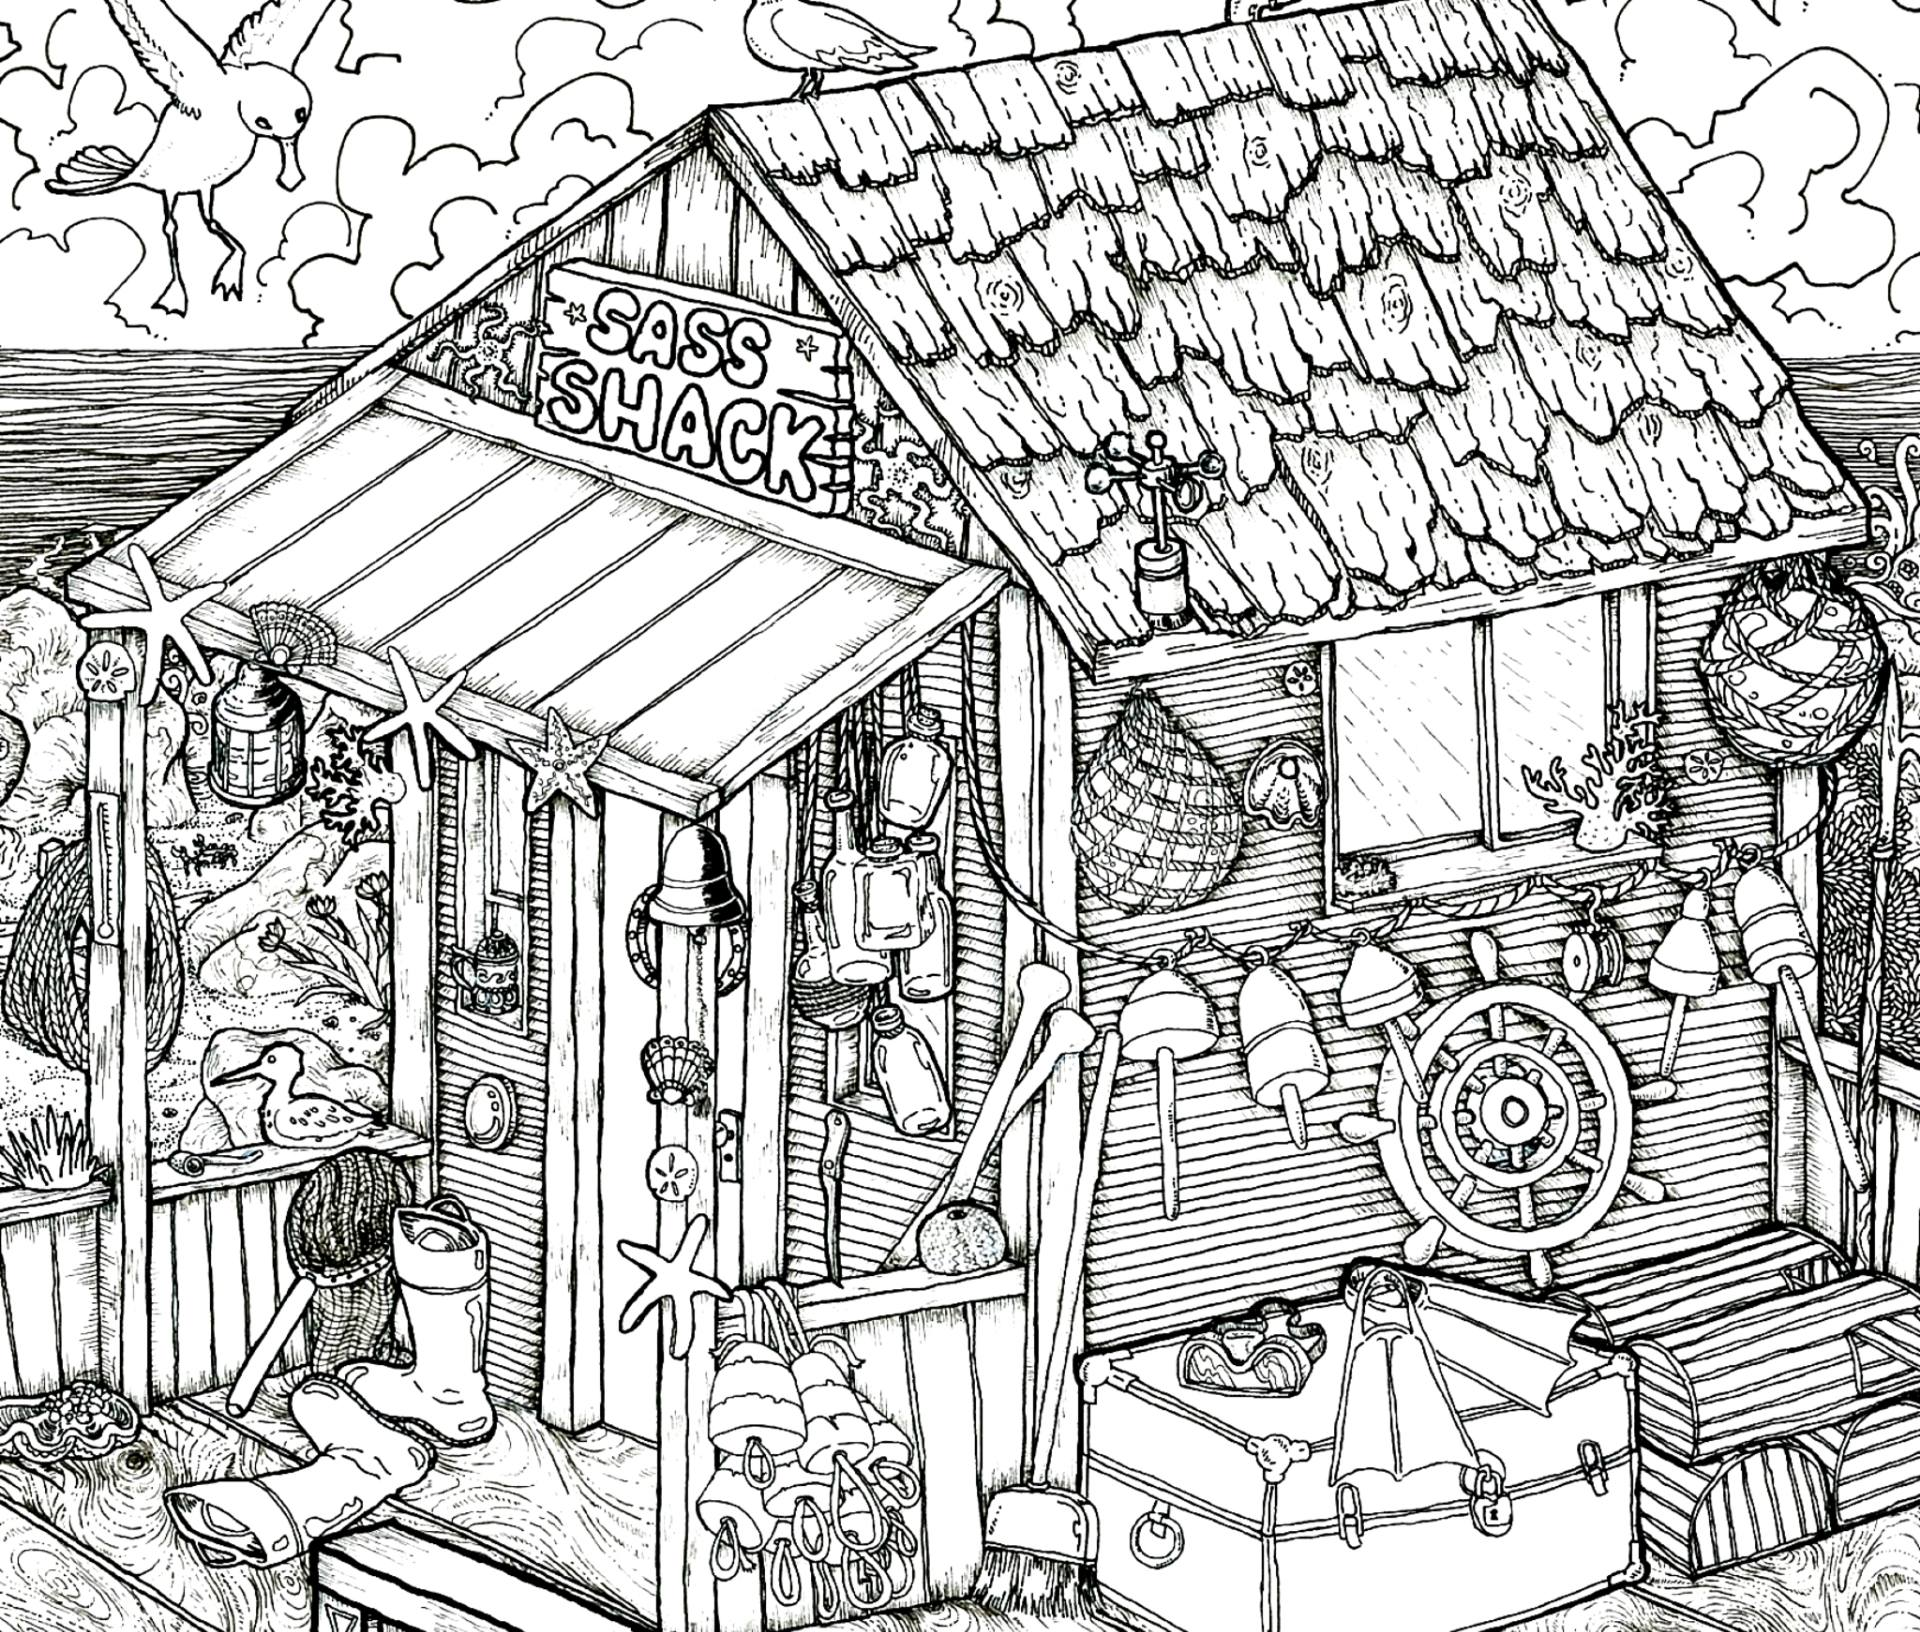 1920x1632 Saatchi Art Shack On The Beach Drawing By Clinton Bowers